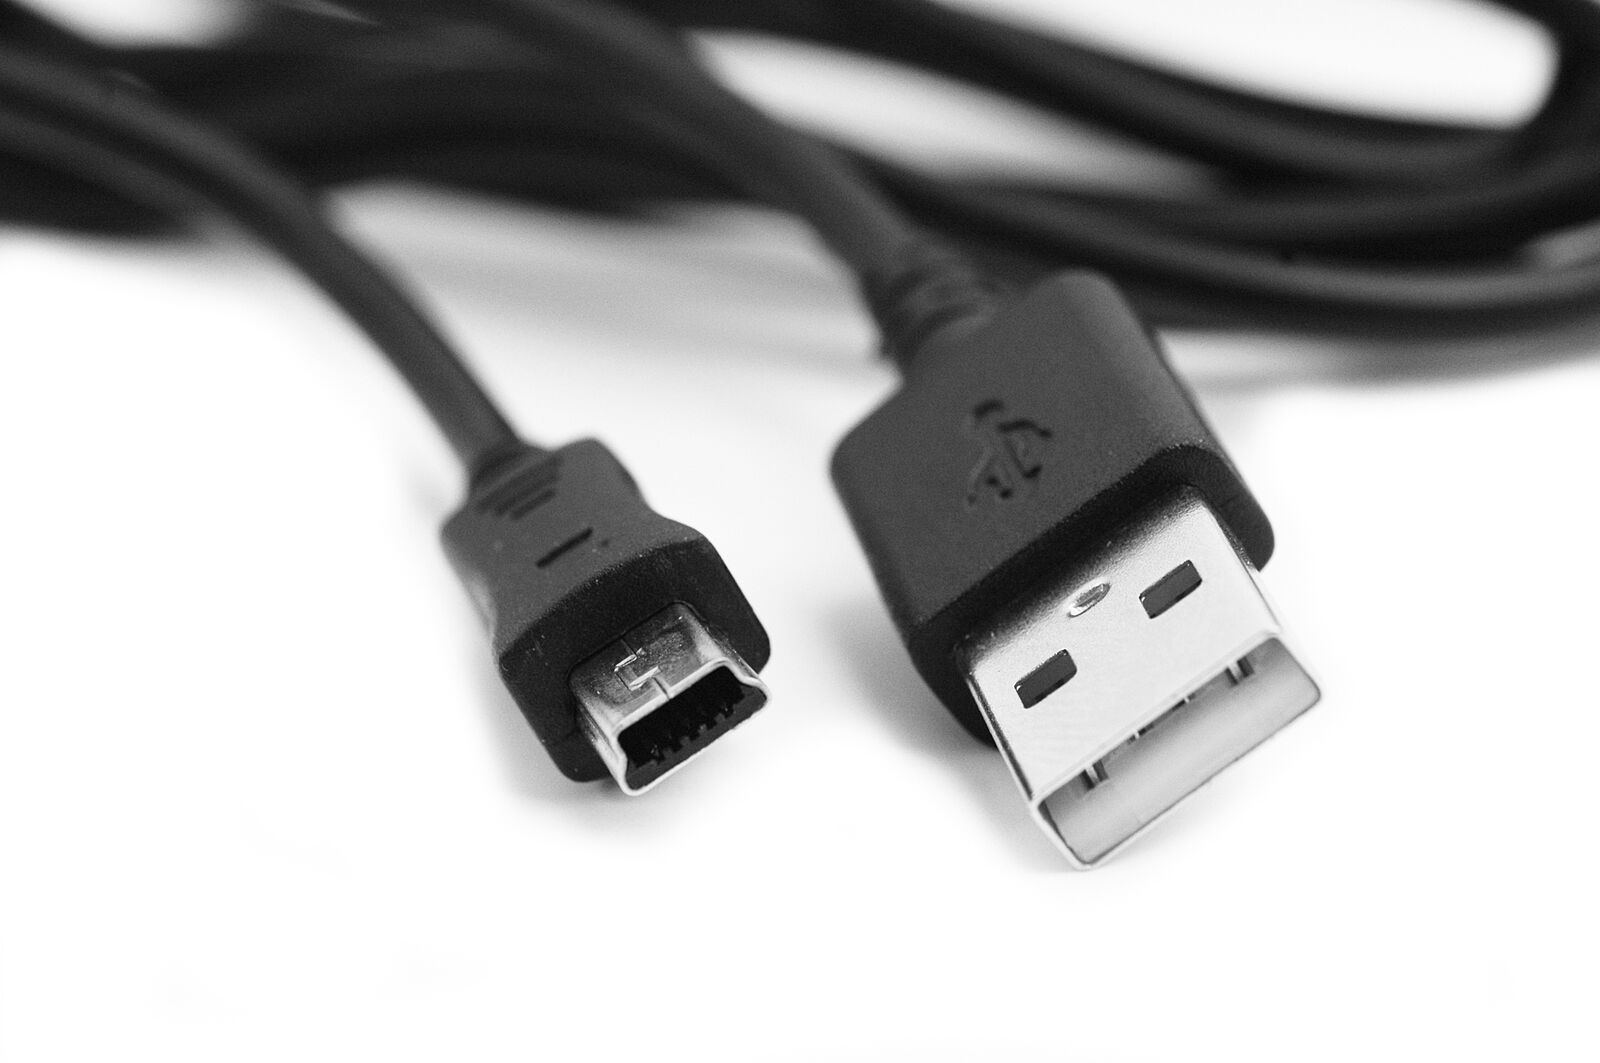 Charger Power Black Cable for Garmin Edge 810 Bike Computer 2m USB Data